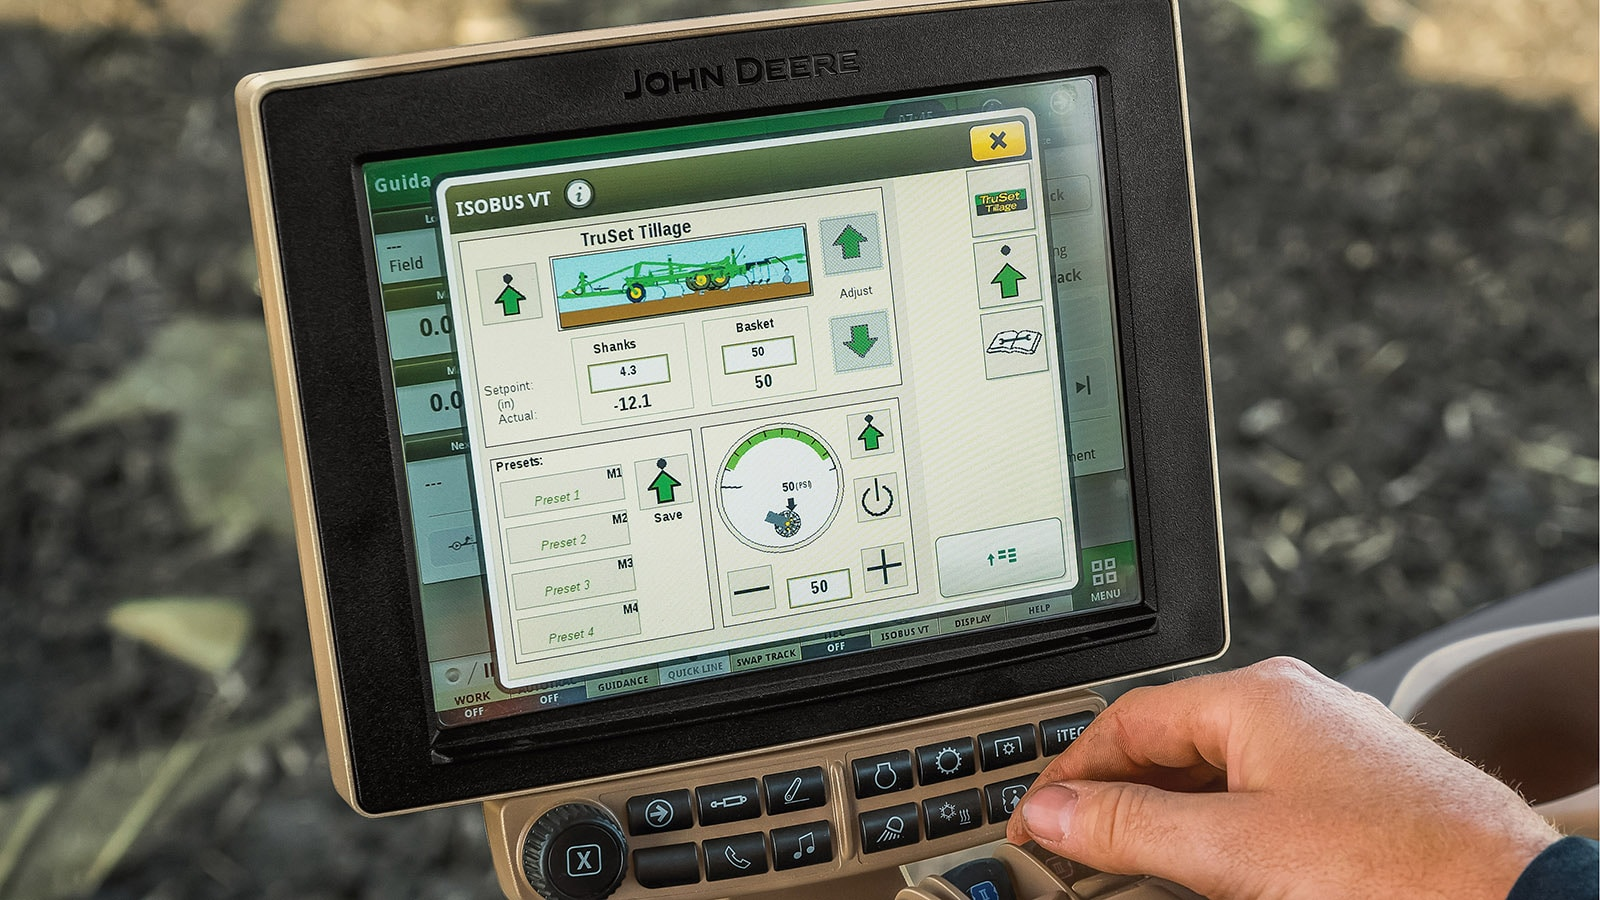 John Deere is offering TruSet depth and pressure control and mapping functions on more new and late model tillage tools for 2018.